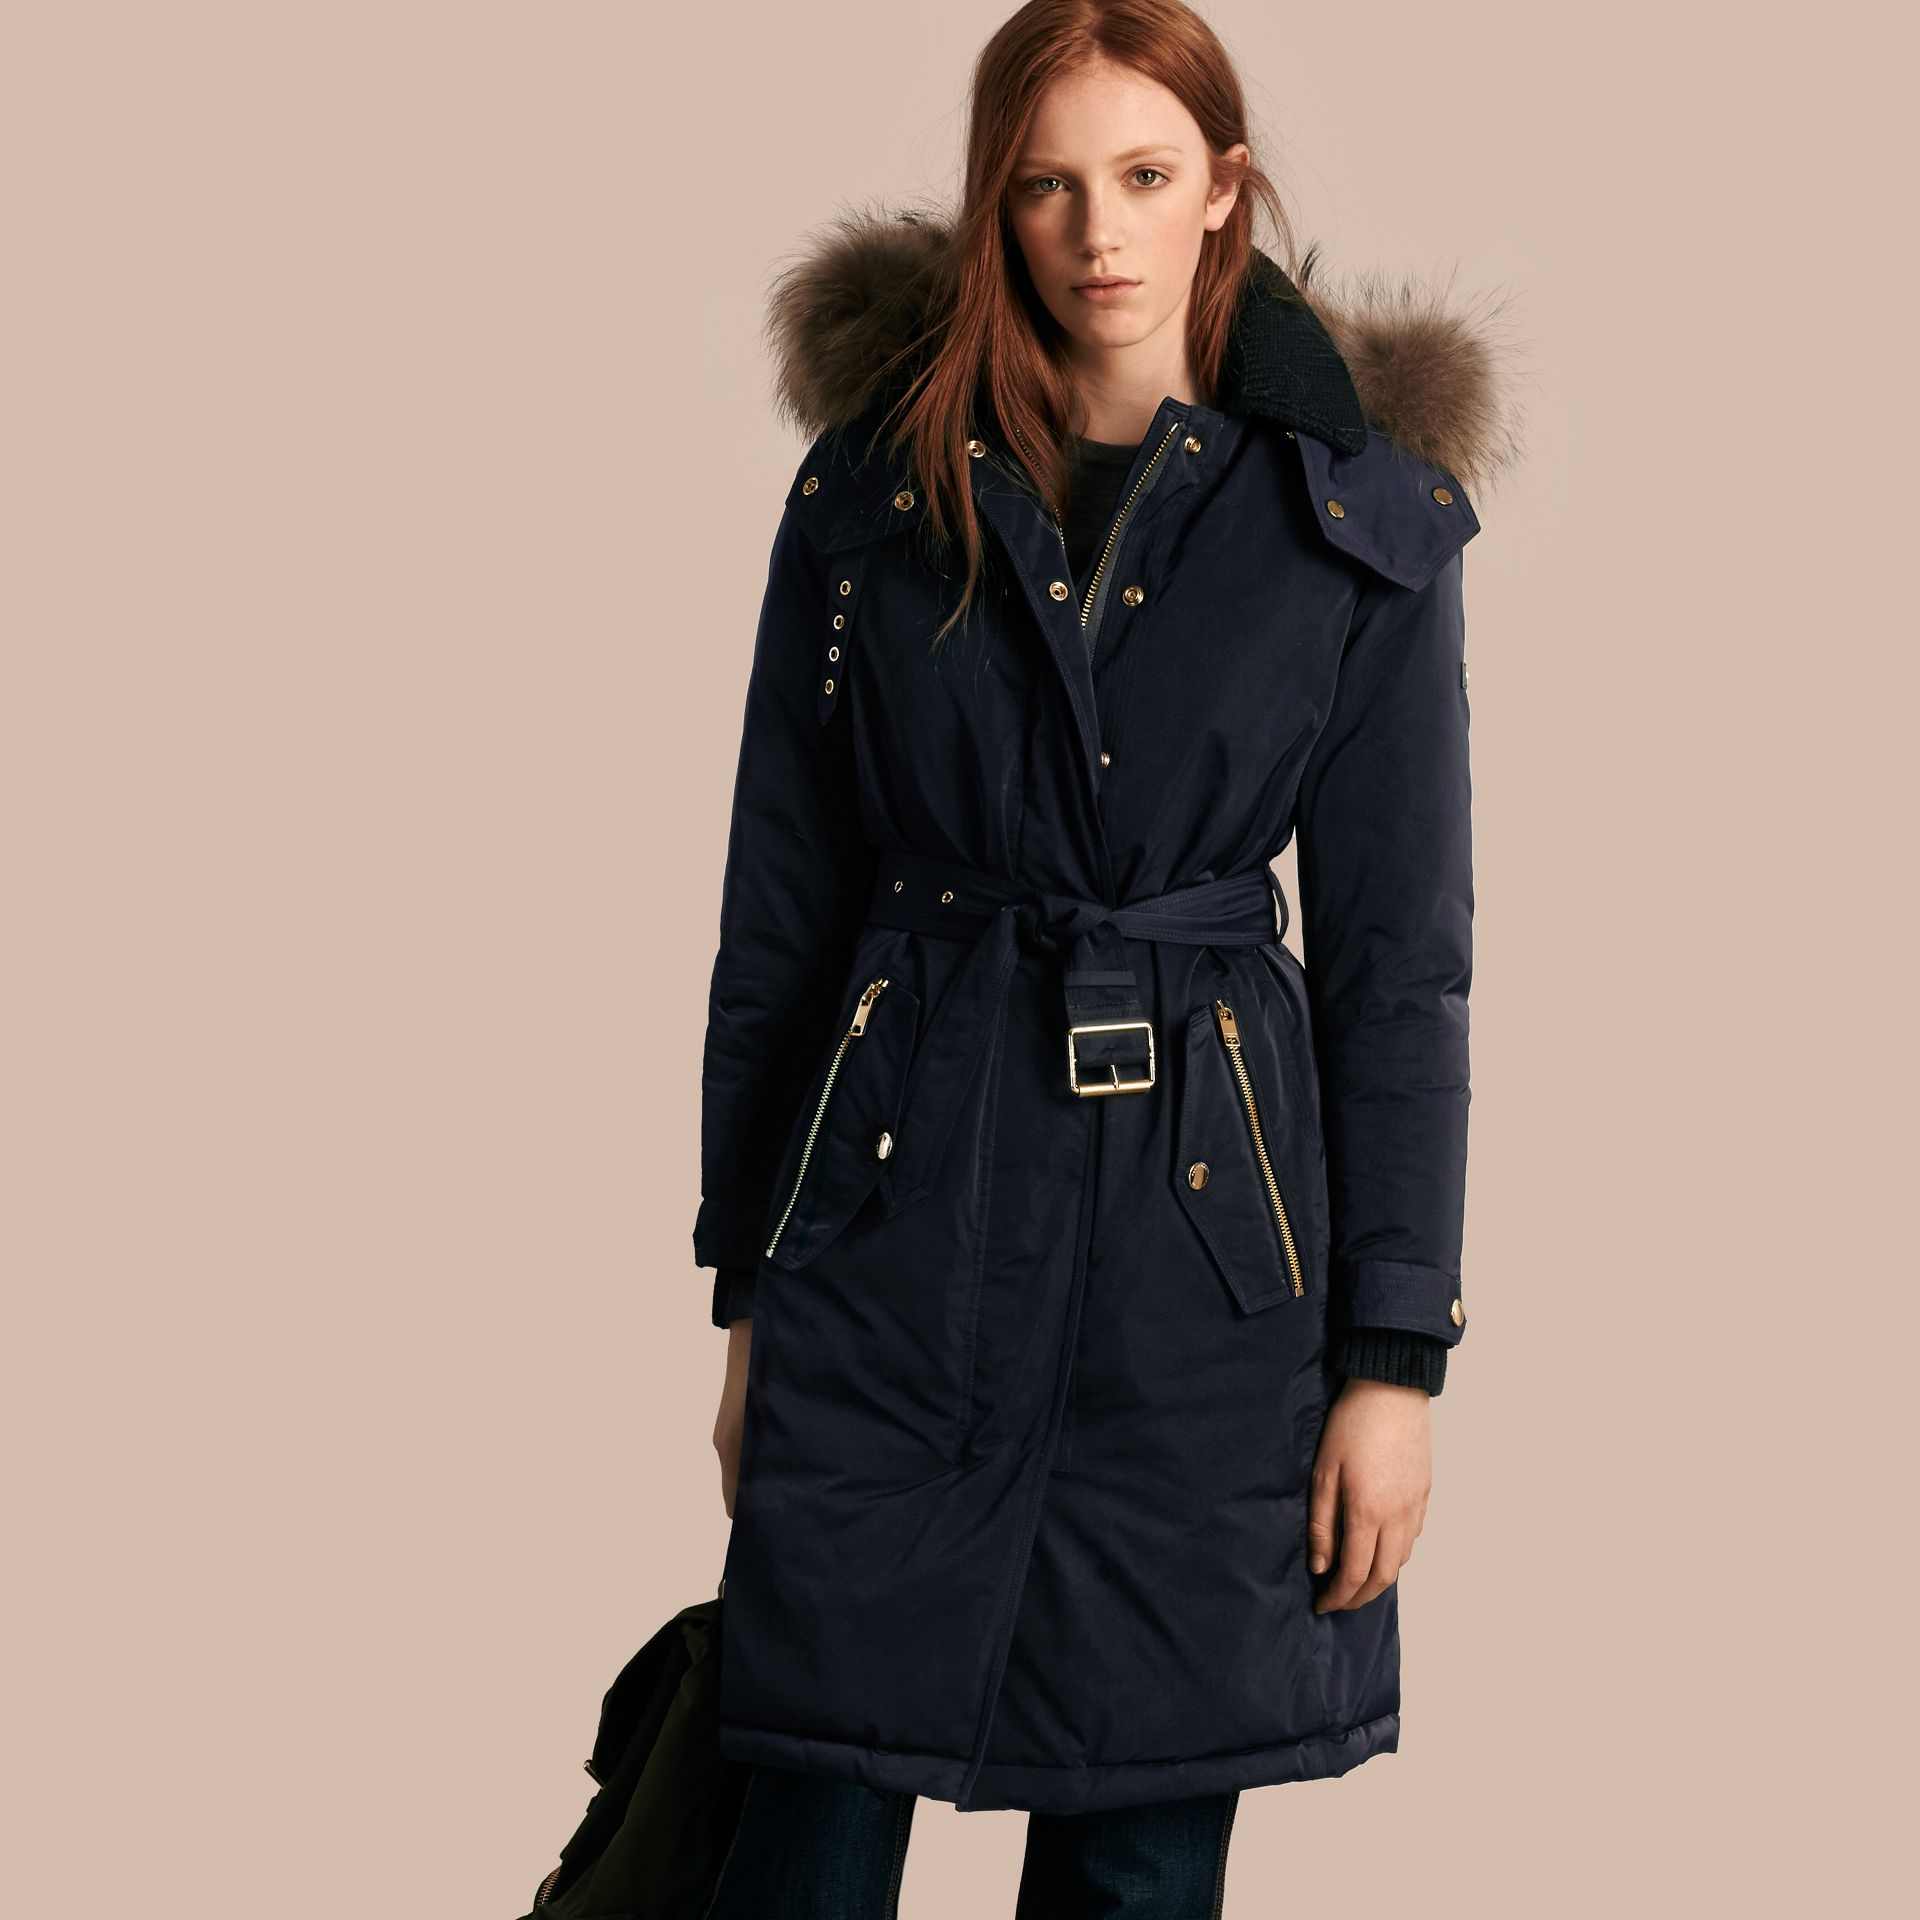 Down-filled Parka Coat with Detachable Fur Trim - gallery image 1